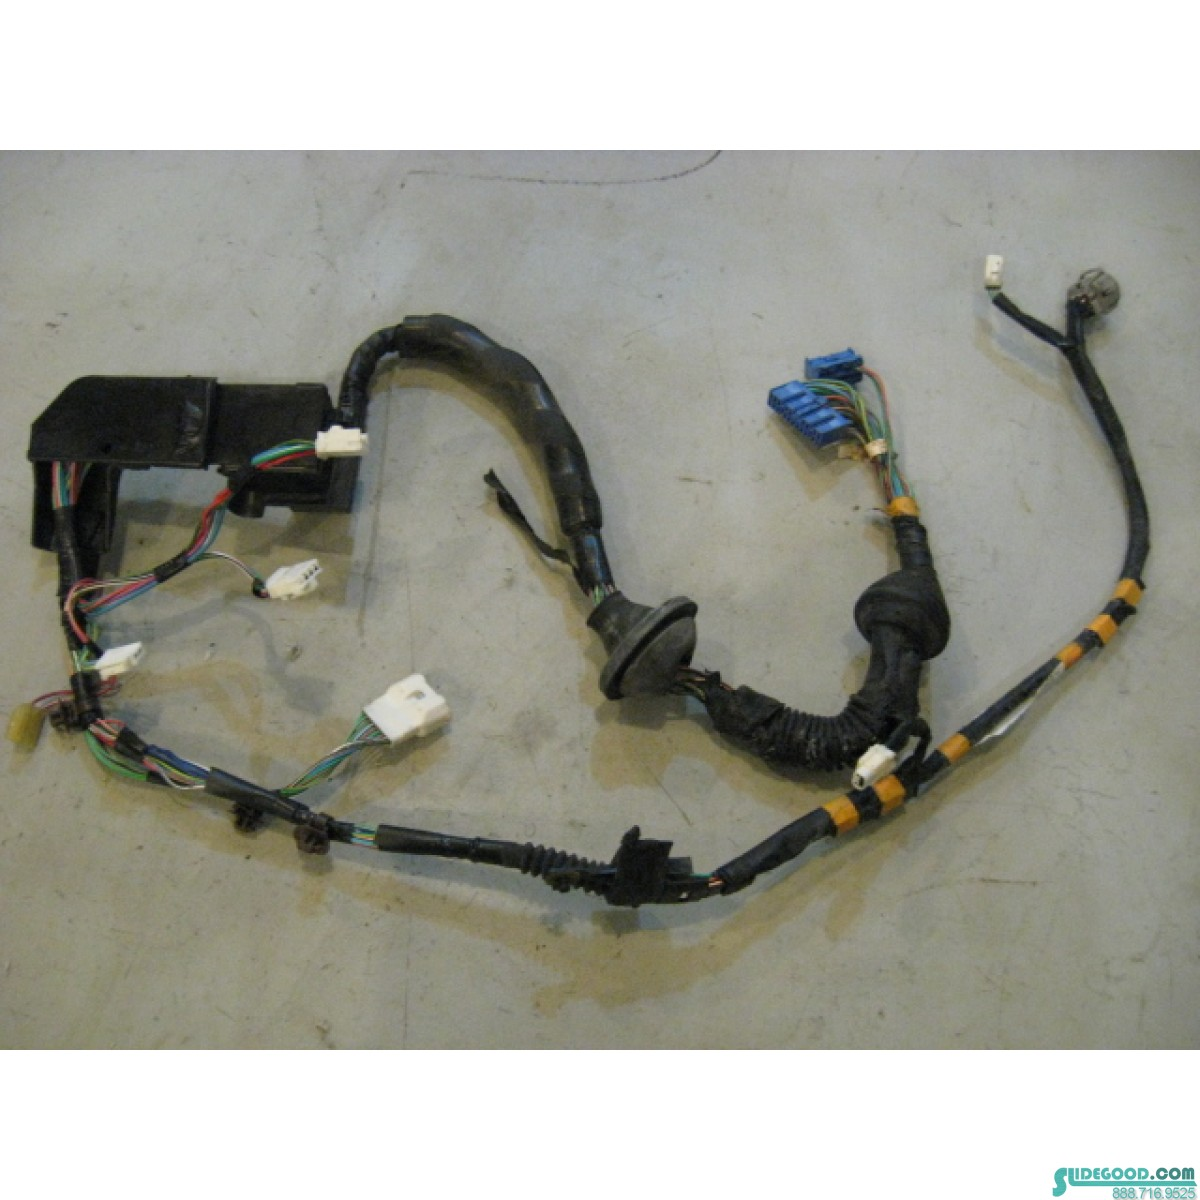 10773_01 lexus sc400 rh passenger door wiring harness 82151 24231 r10773  at creativeand.co